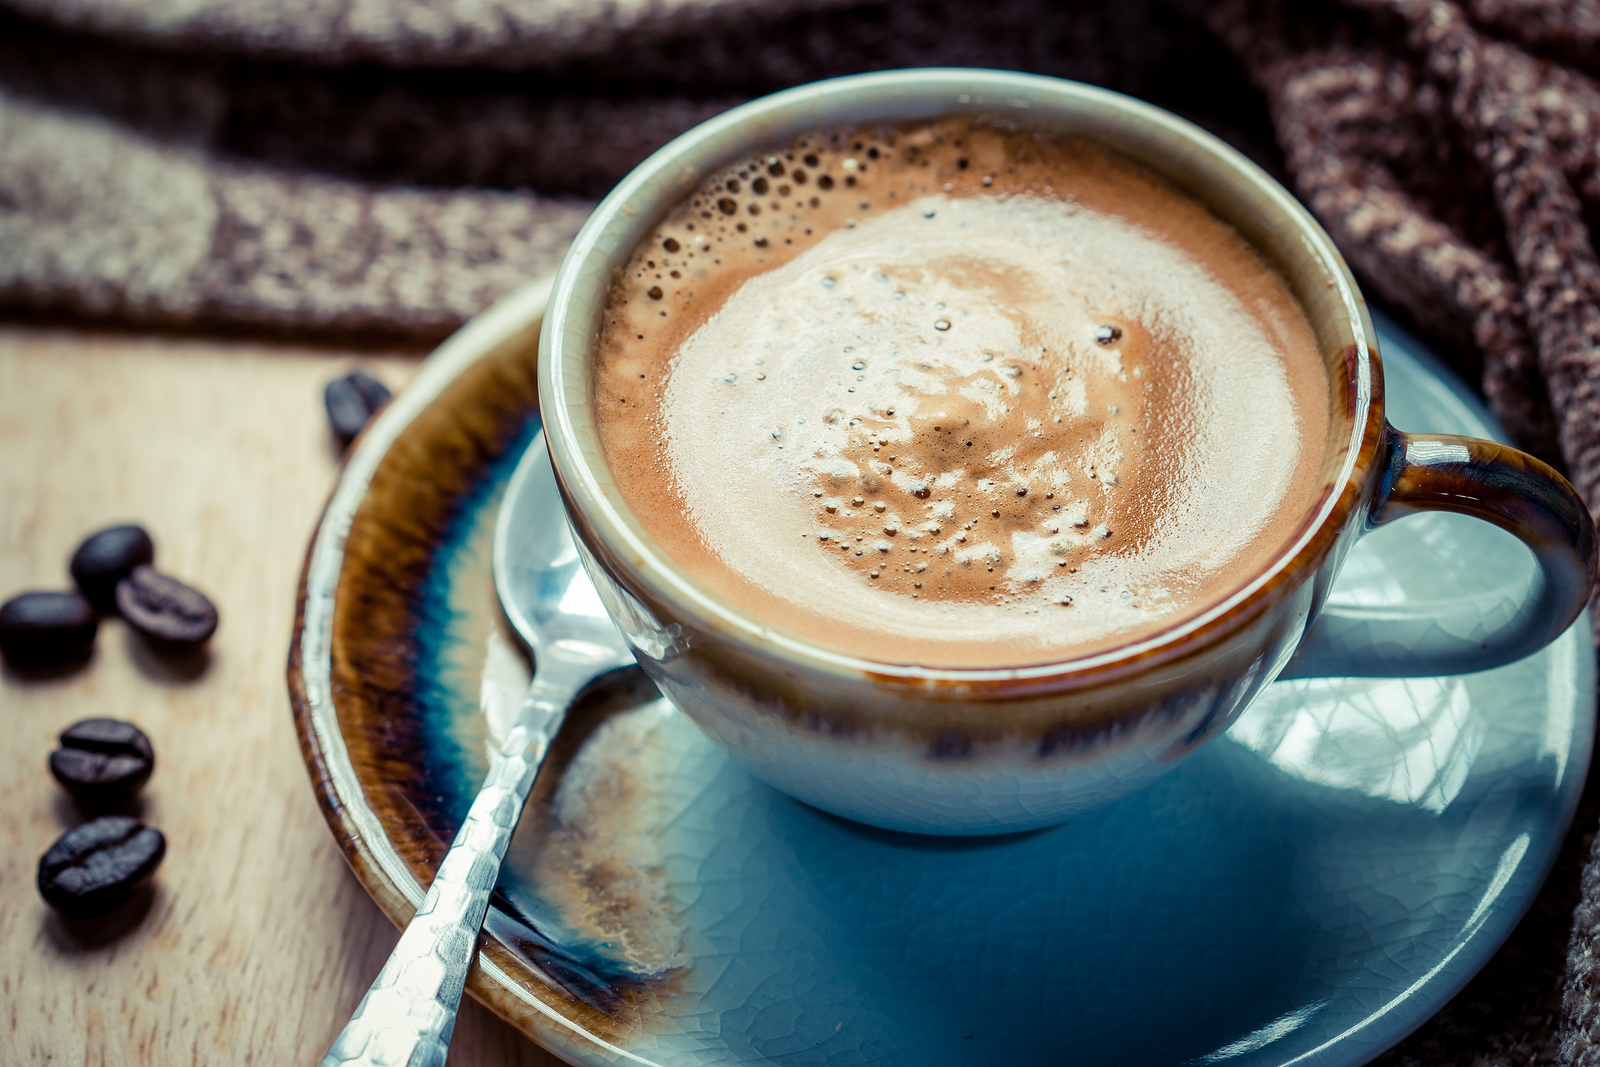 Coffee. How Bad is it for Your Health?